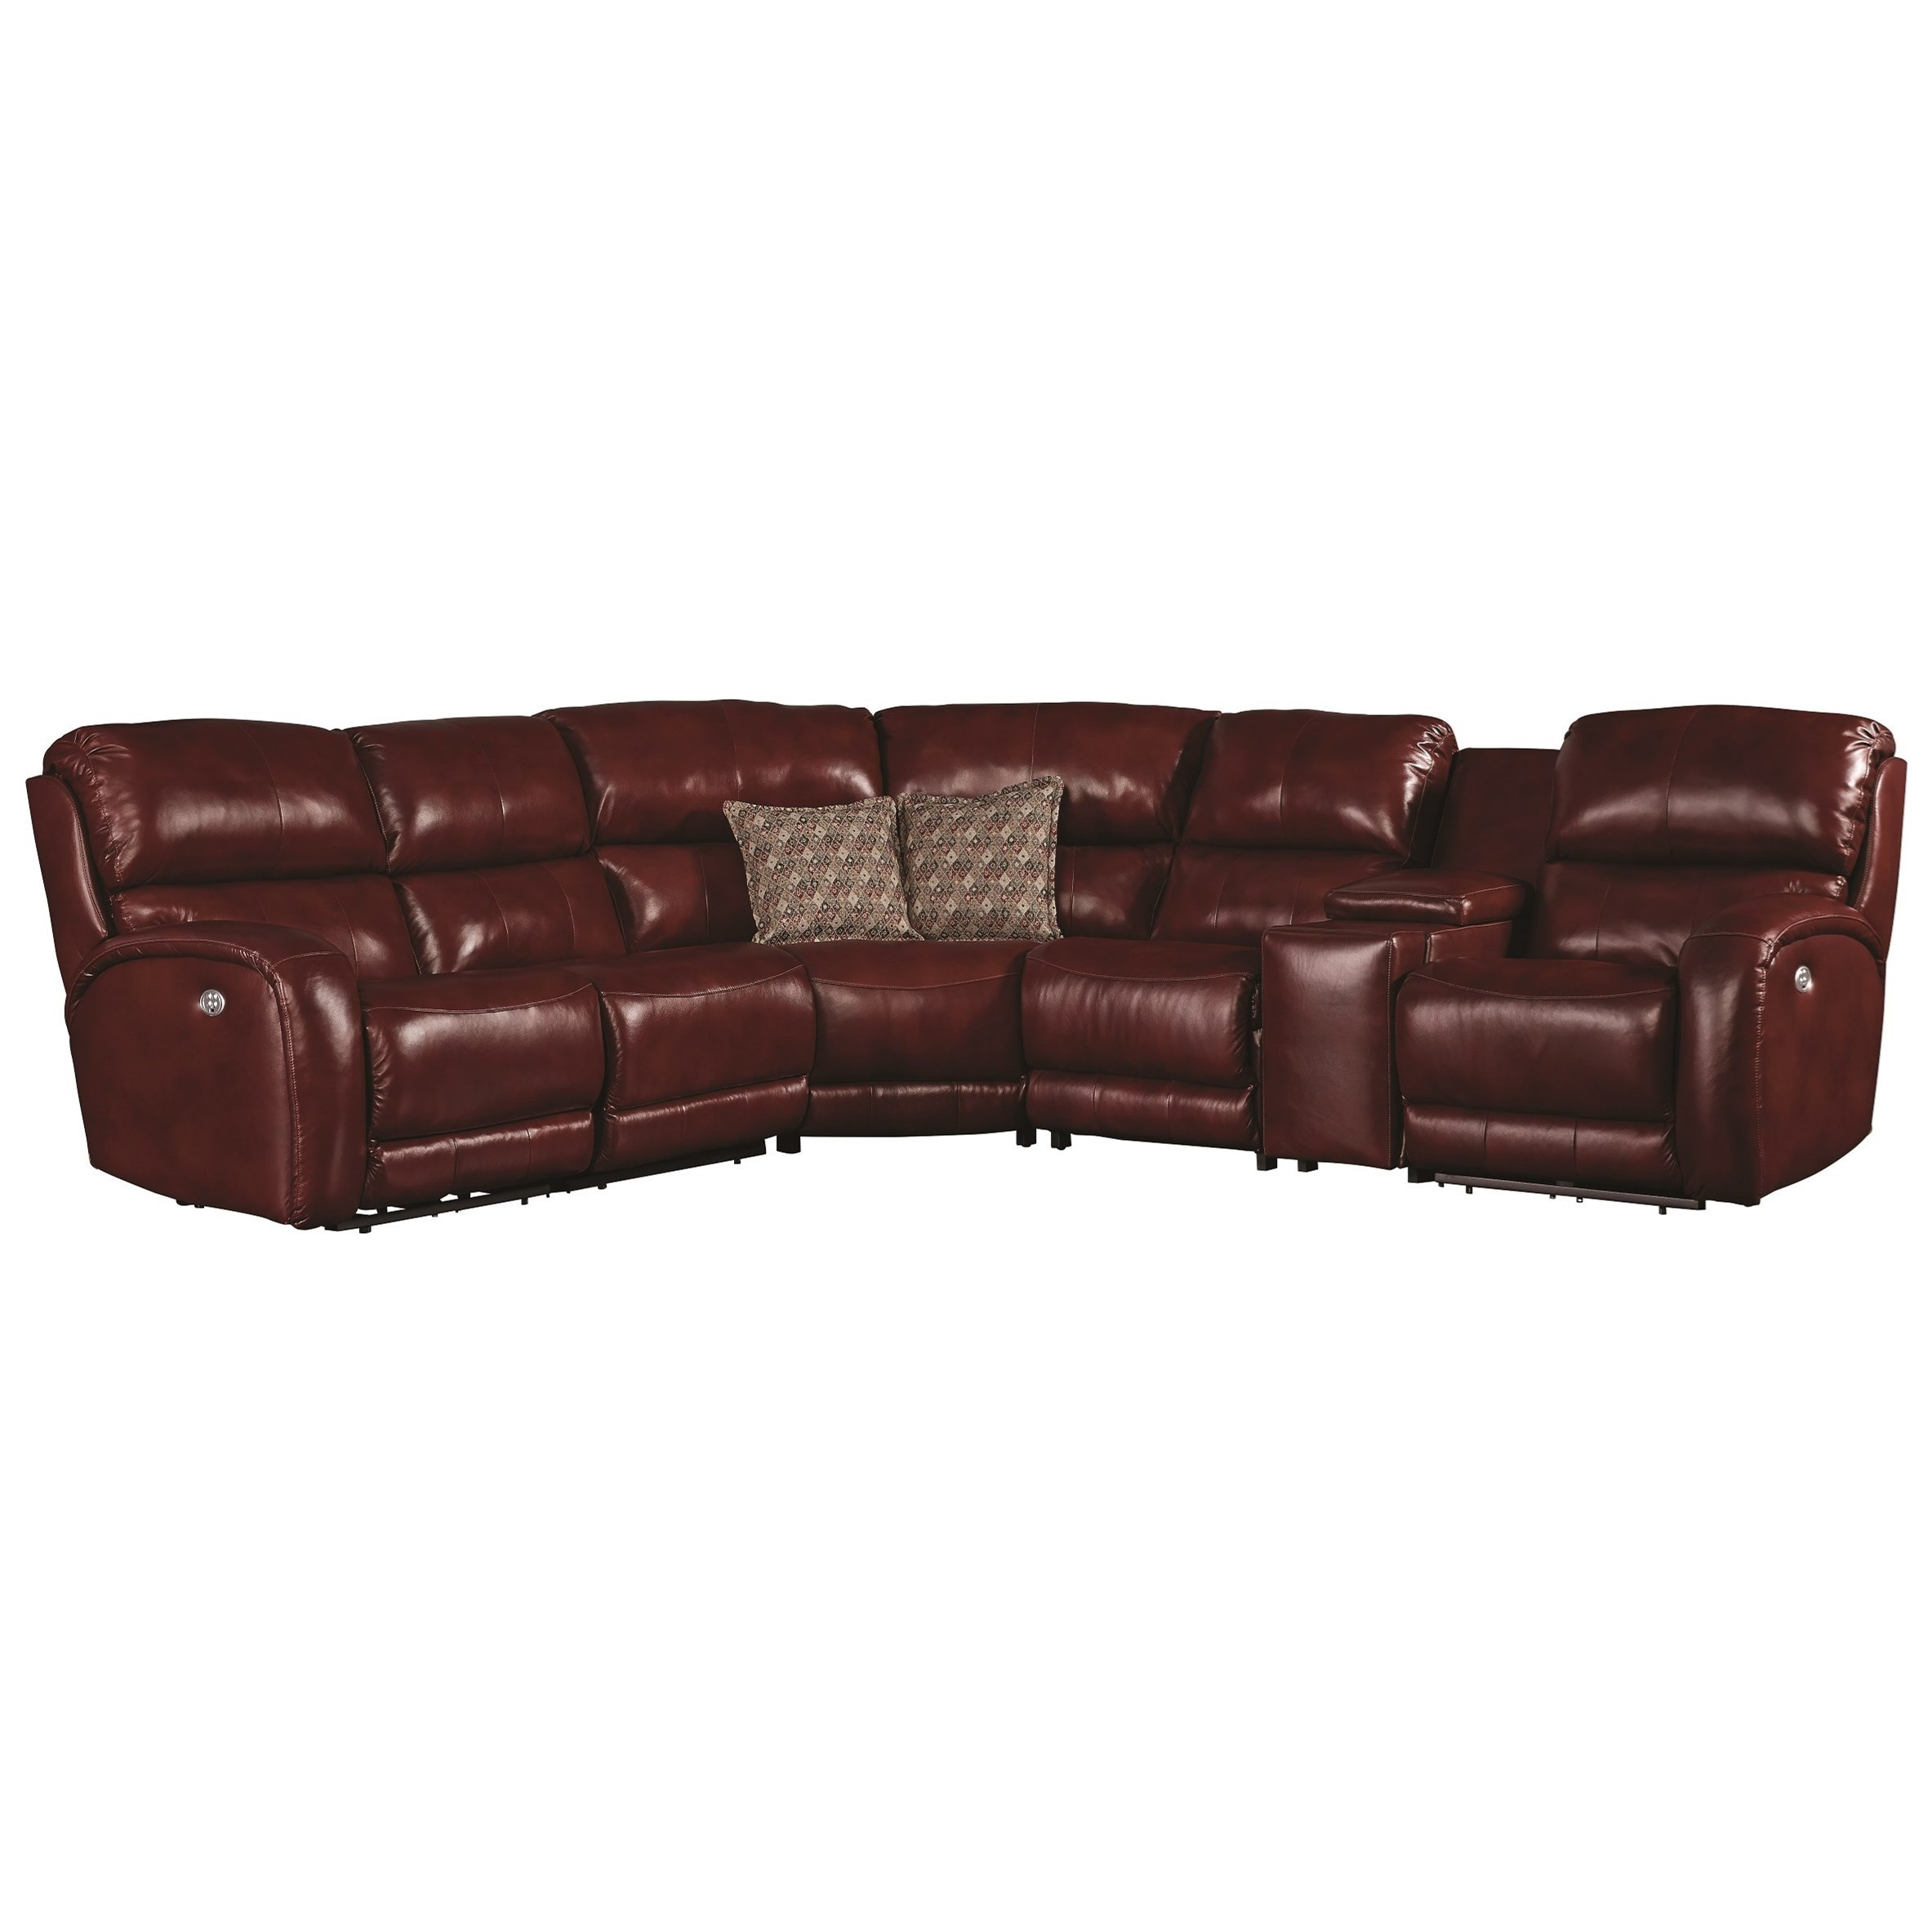 Southern Motion Fandango Casual Power Headrest Reclining Sofa With Console And Cup Holders